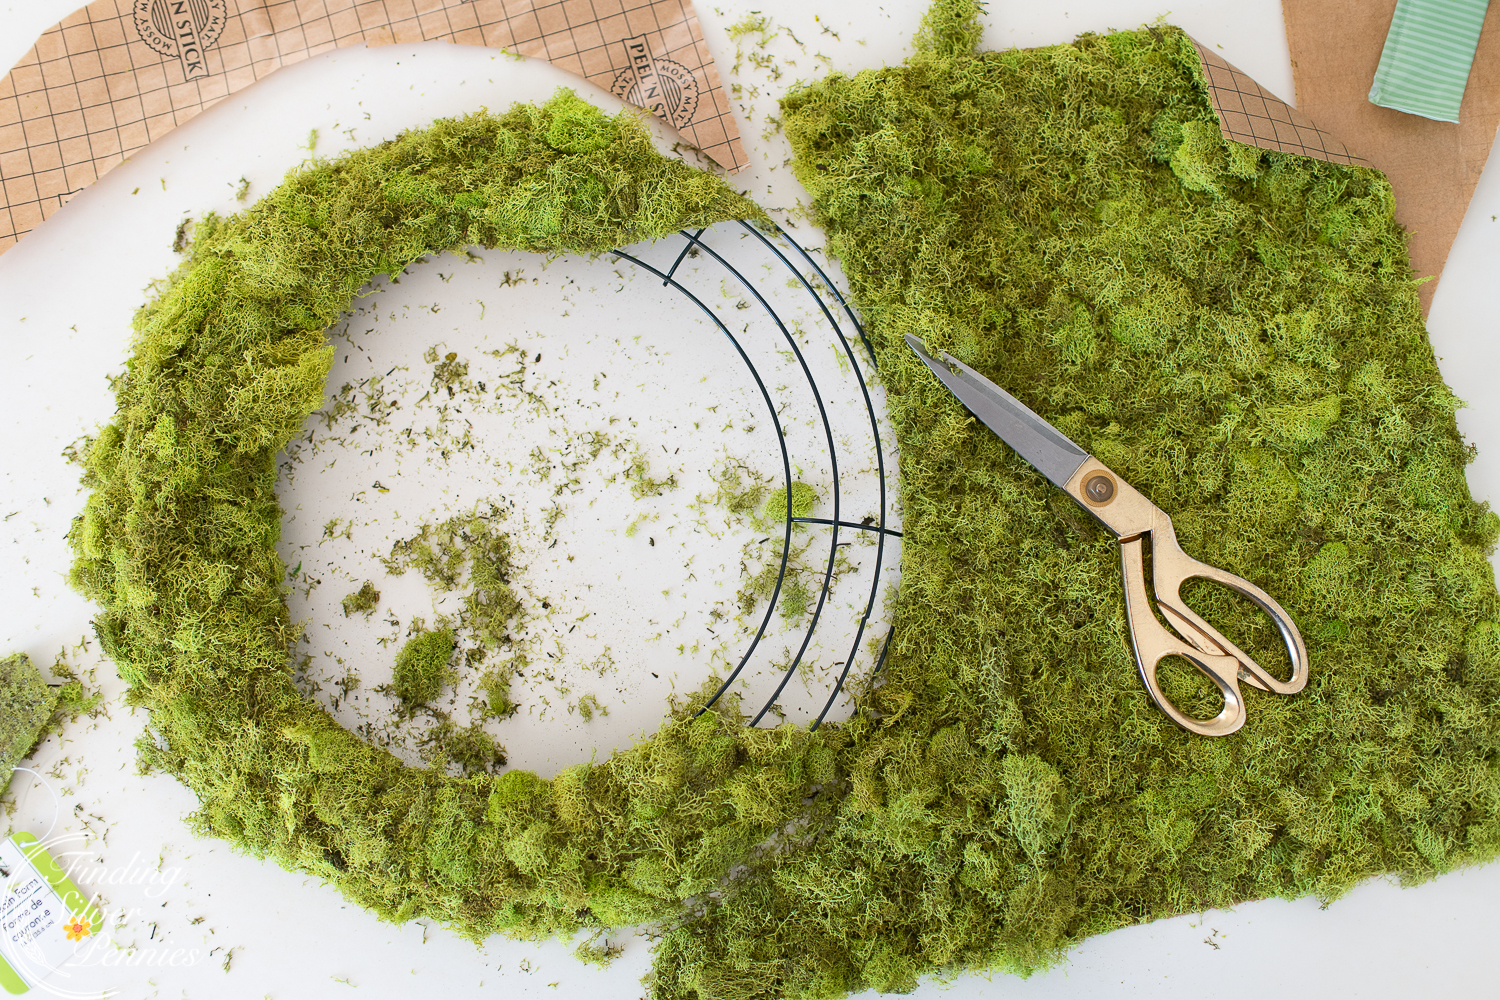 How to make a simple moss wreath #moss #crafts #DIYmosswreath #diymossnapkinrings #winterdecorating #hygge #cozyliving